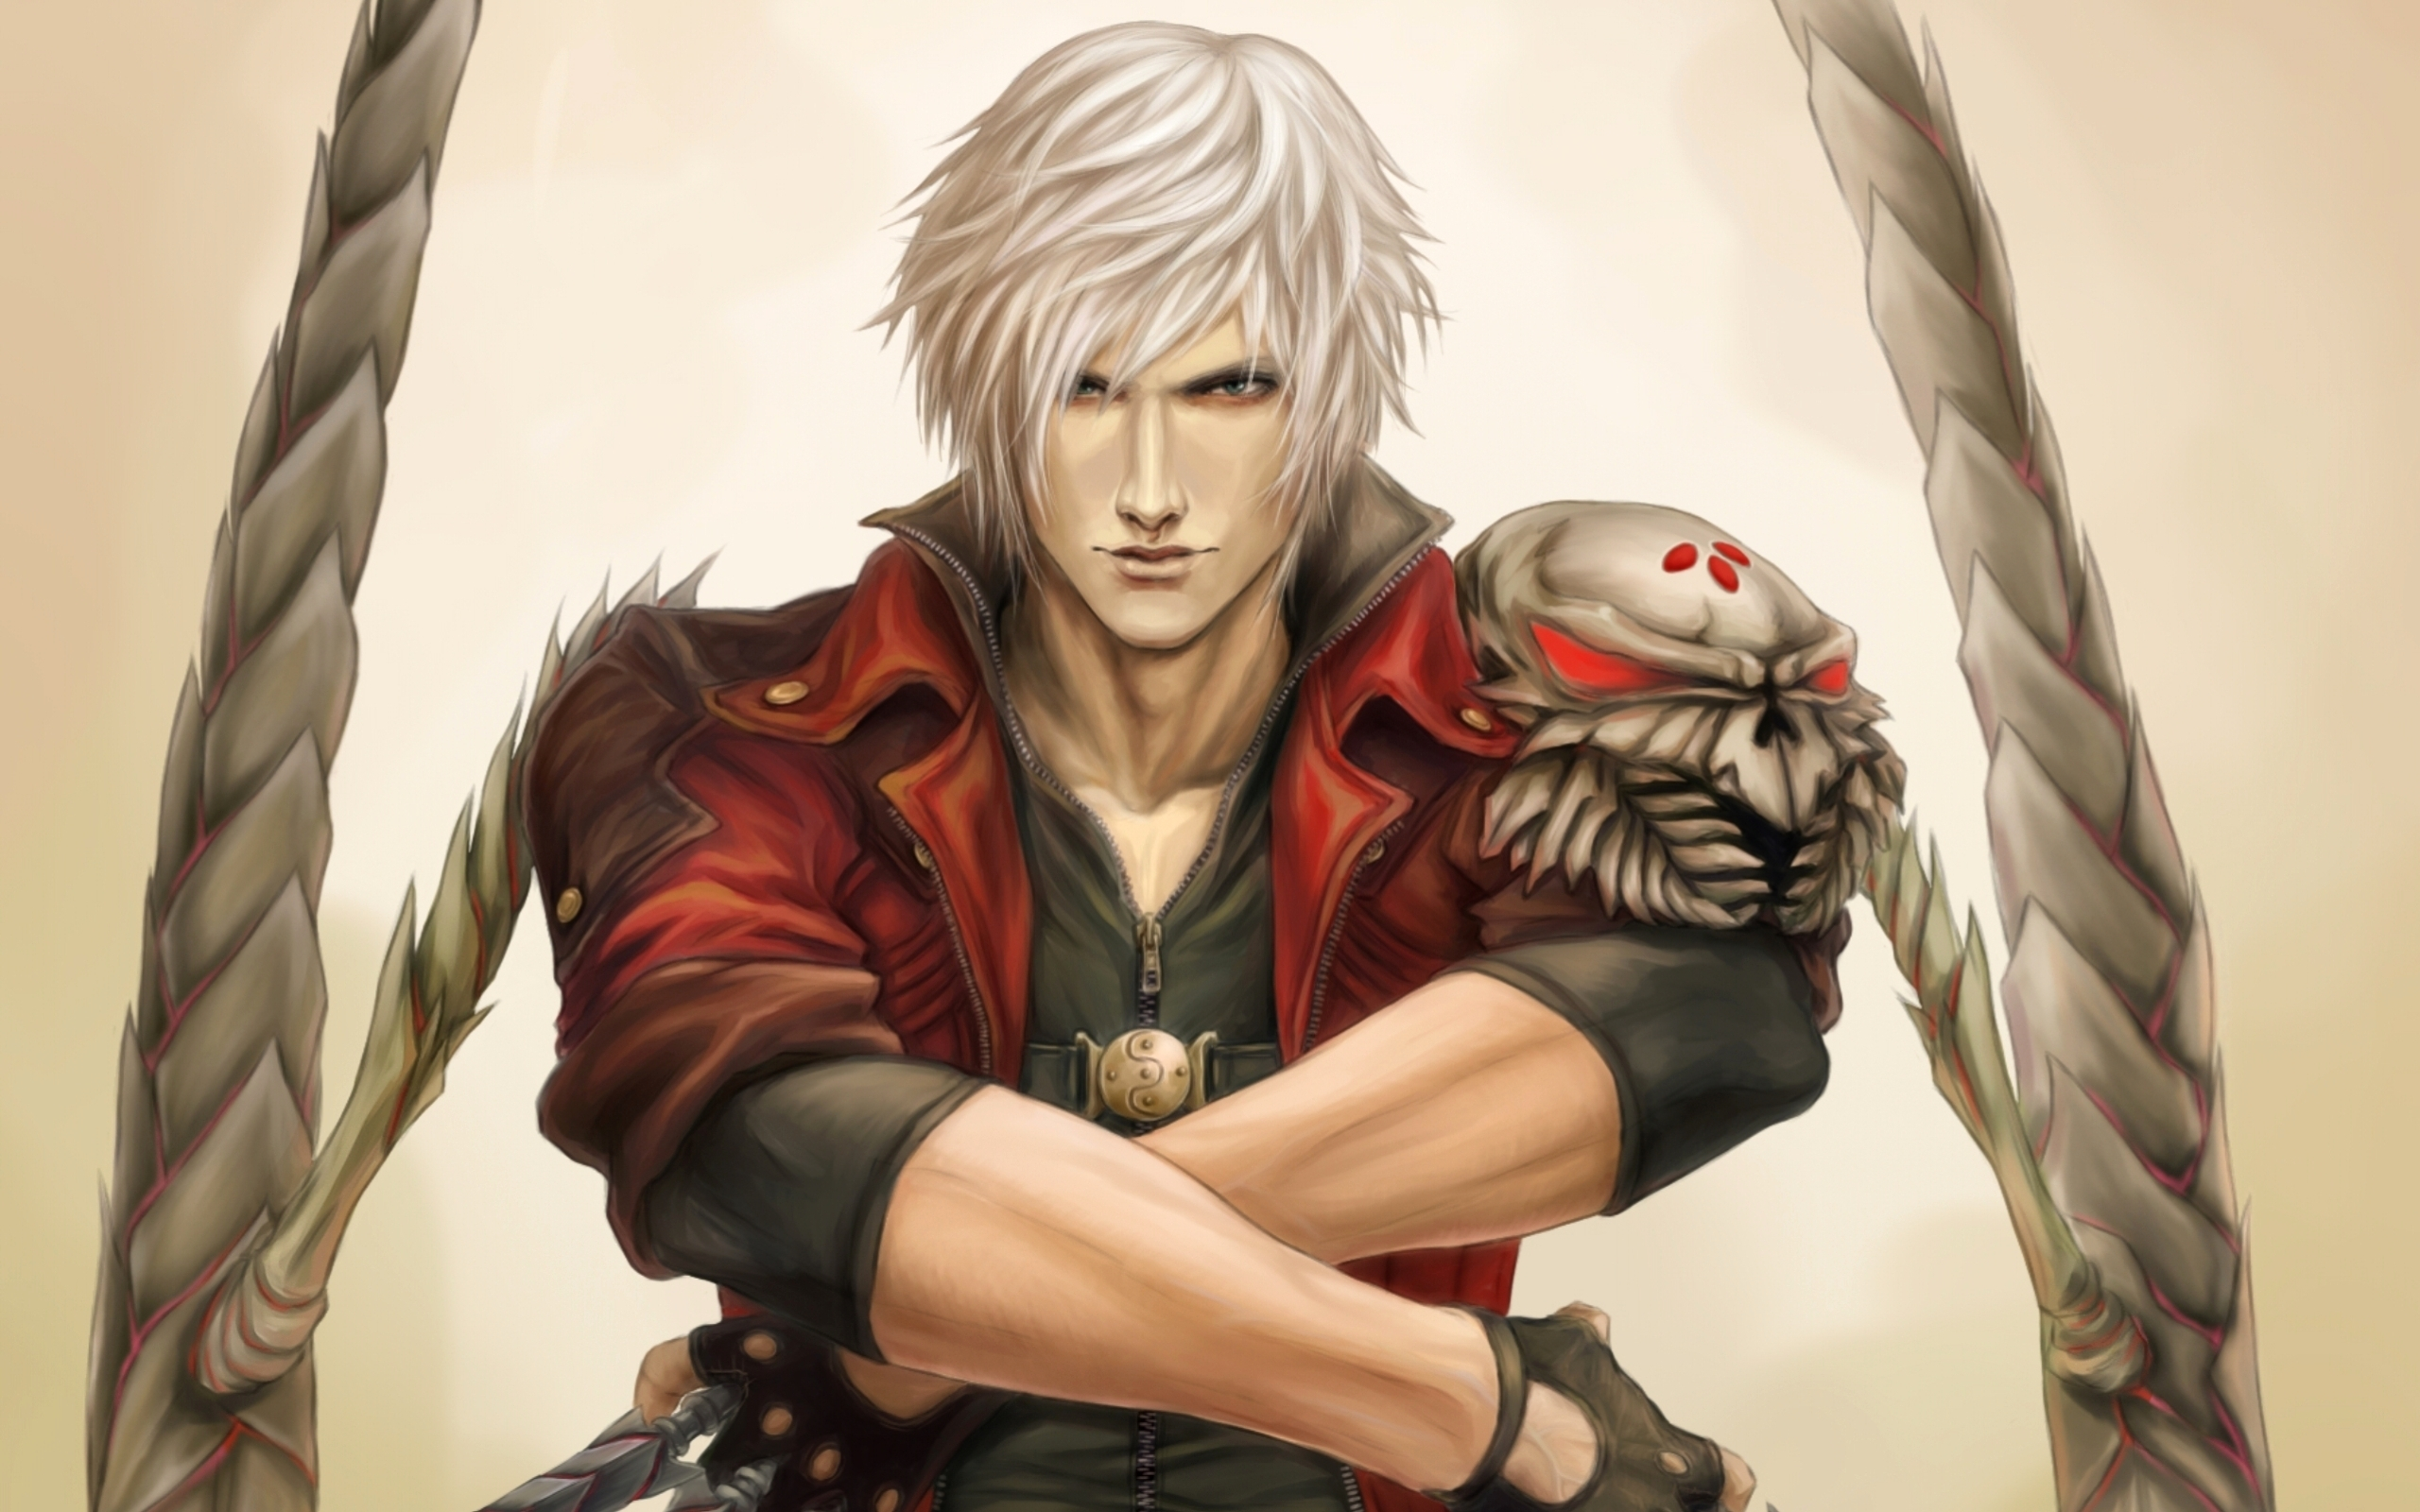 Devil May Cry Hd Wallpapers High Quality All Hd Wallpapers